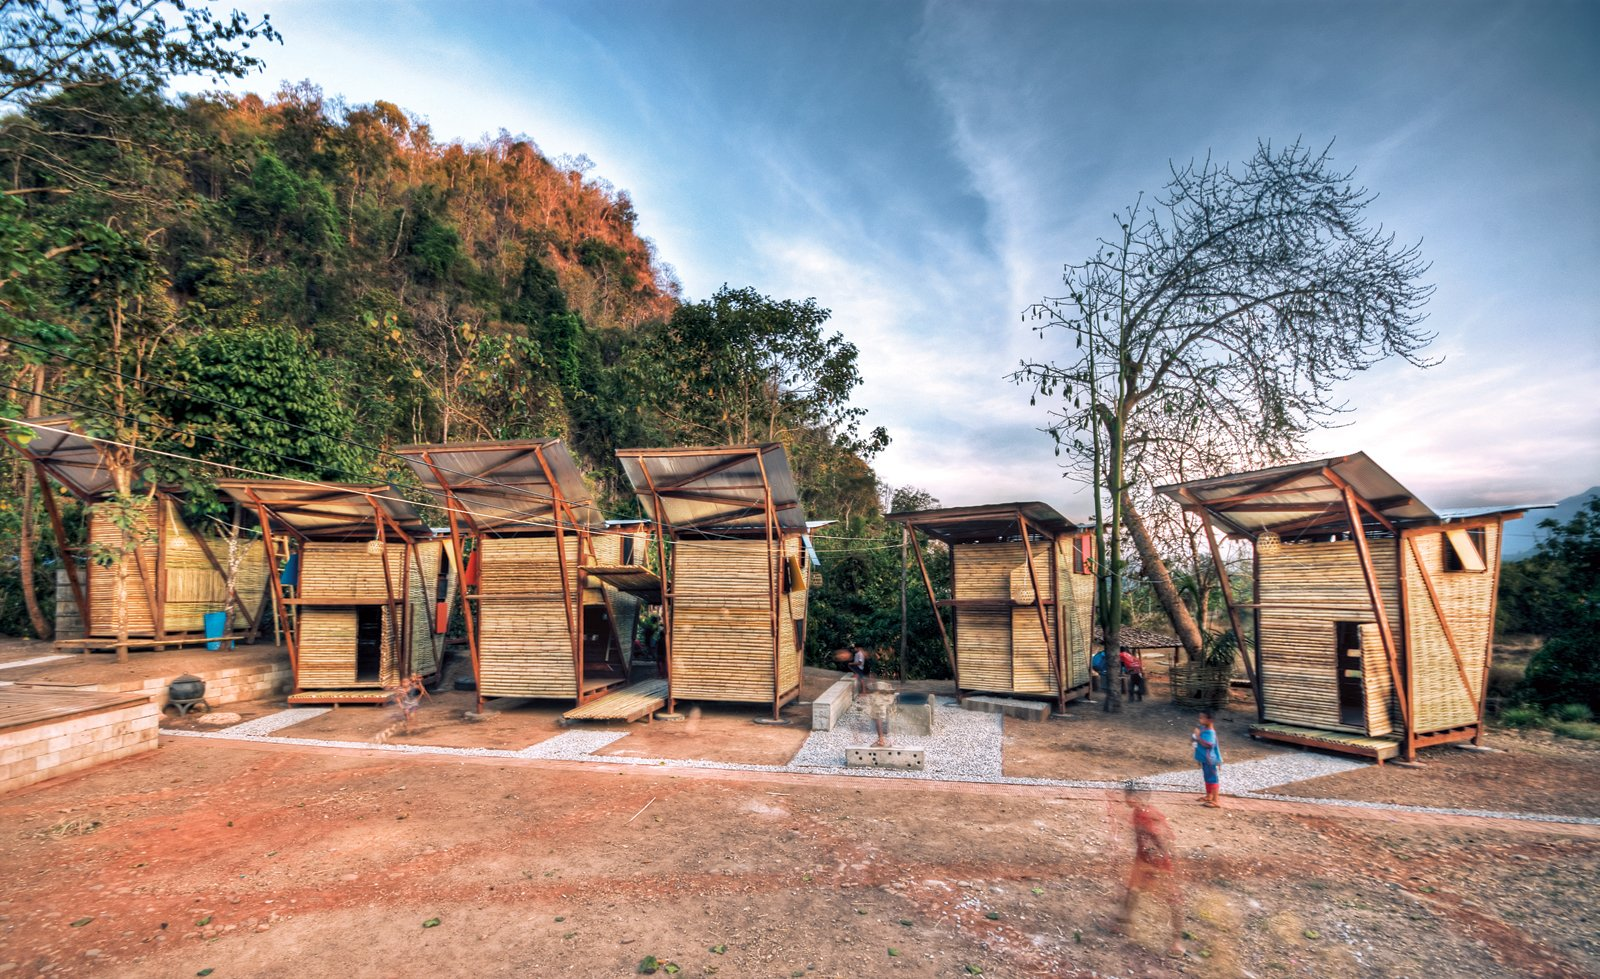 Articles about meet upstart humanitarian architecture duo tyin tegnestue on Dwell.com